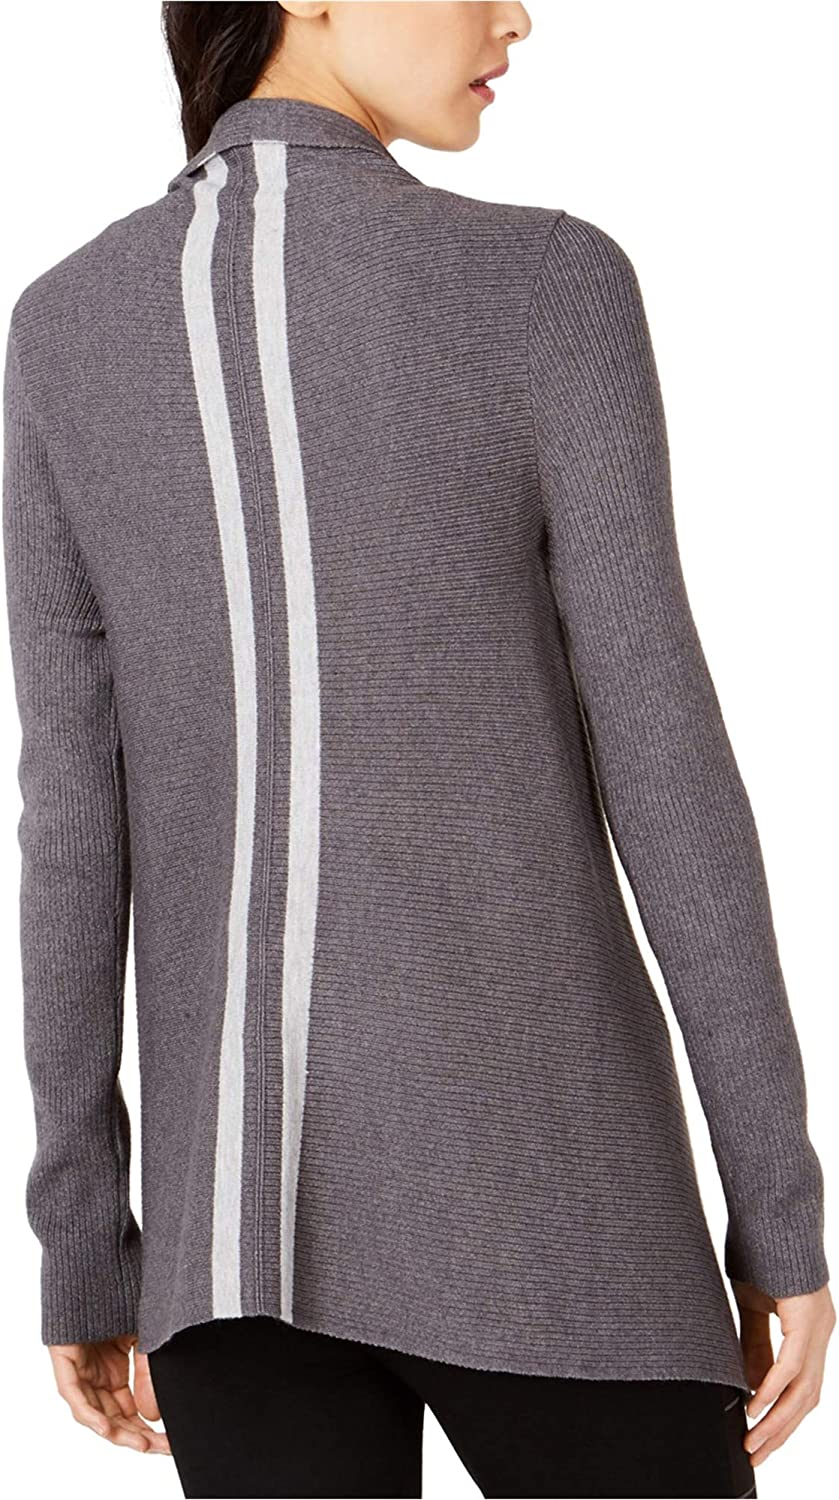 I-N-C Womens Open-Front Cardigan Sweater, Grey, Small